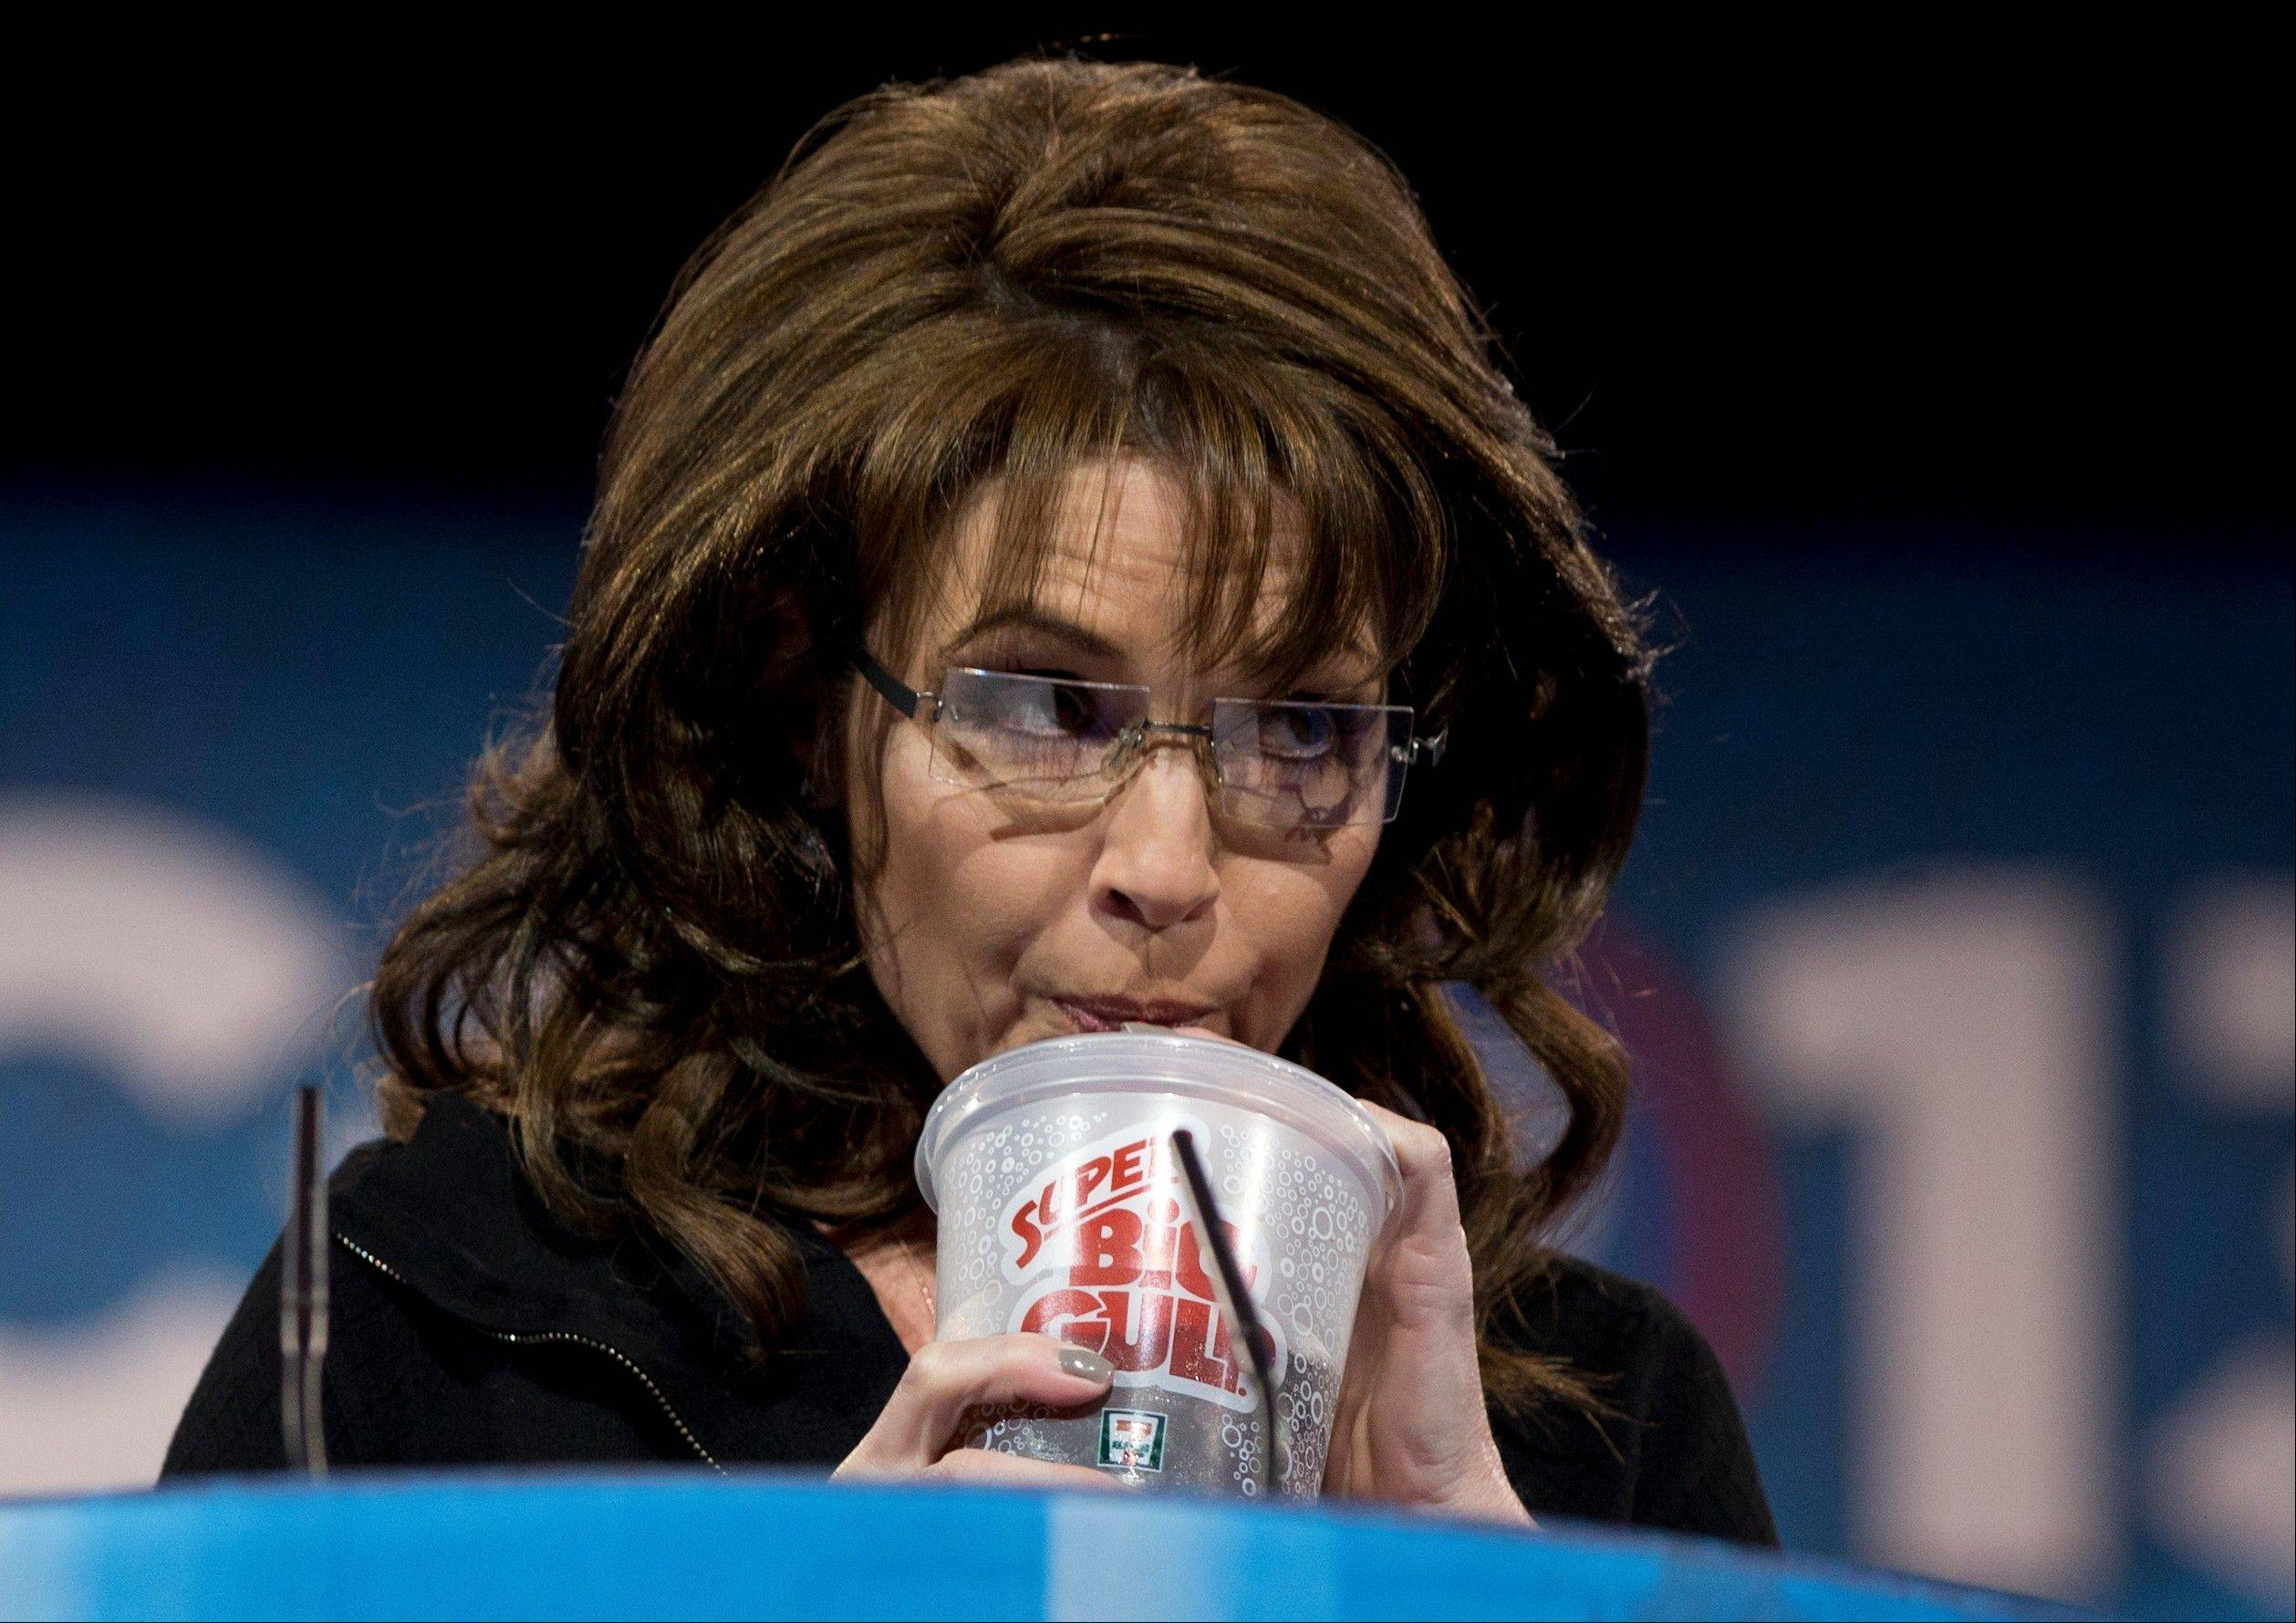 Former Alaska Gov. Sarah Palin drinks from a 7-Eleven Super Big Gulp on stage while speaking Saturday at the 40th annual Conservative Political Action Conference in National Harbor, Md. Earlier in the week a New York judge struck down a ban proposed by New York Mayor Michael Bloomberg to end the sale of sugared sodas larger than 16 oz.